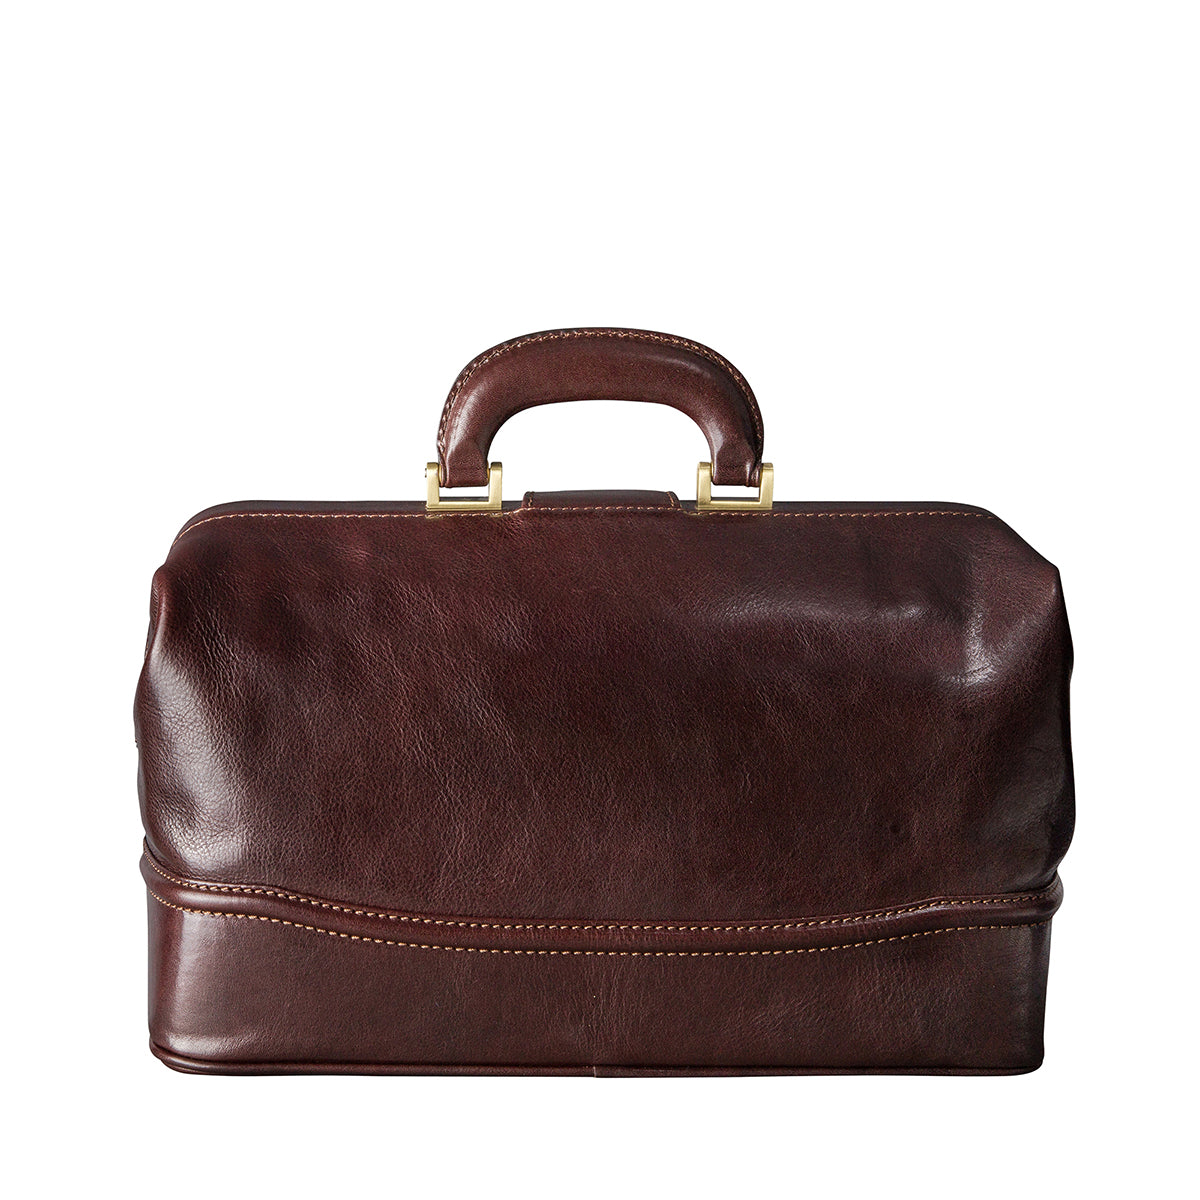 Image 4 of the 'Donnini' Dark Chocolate Veg-Tanned Leather Doctor's Bag